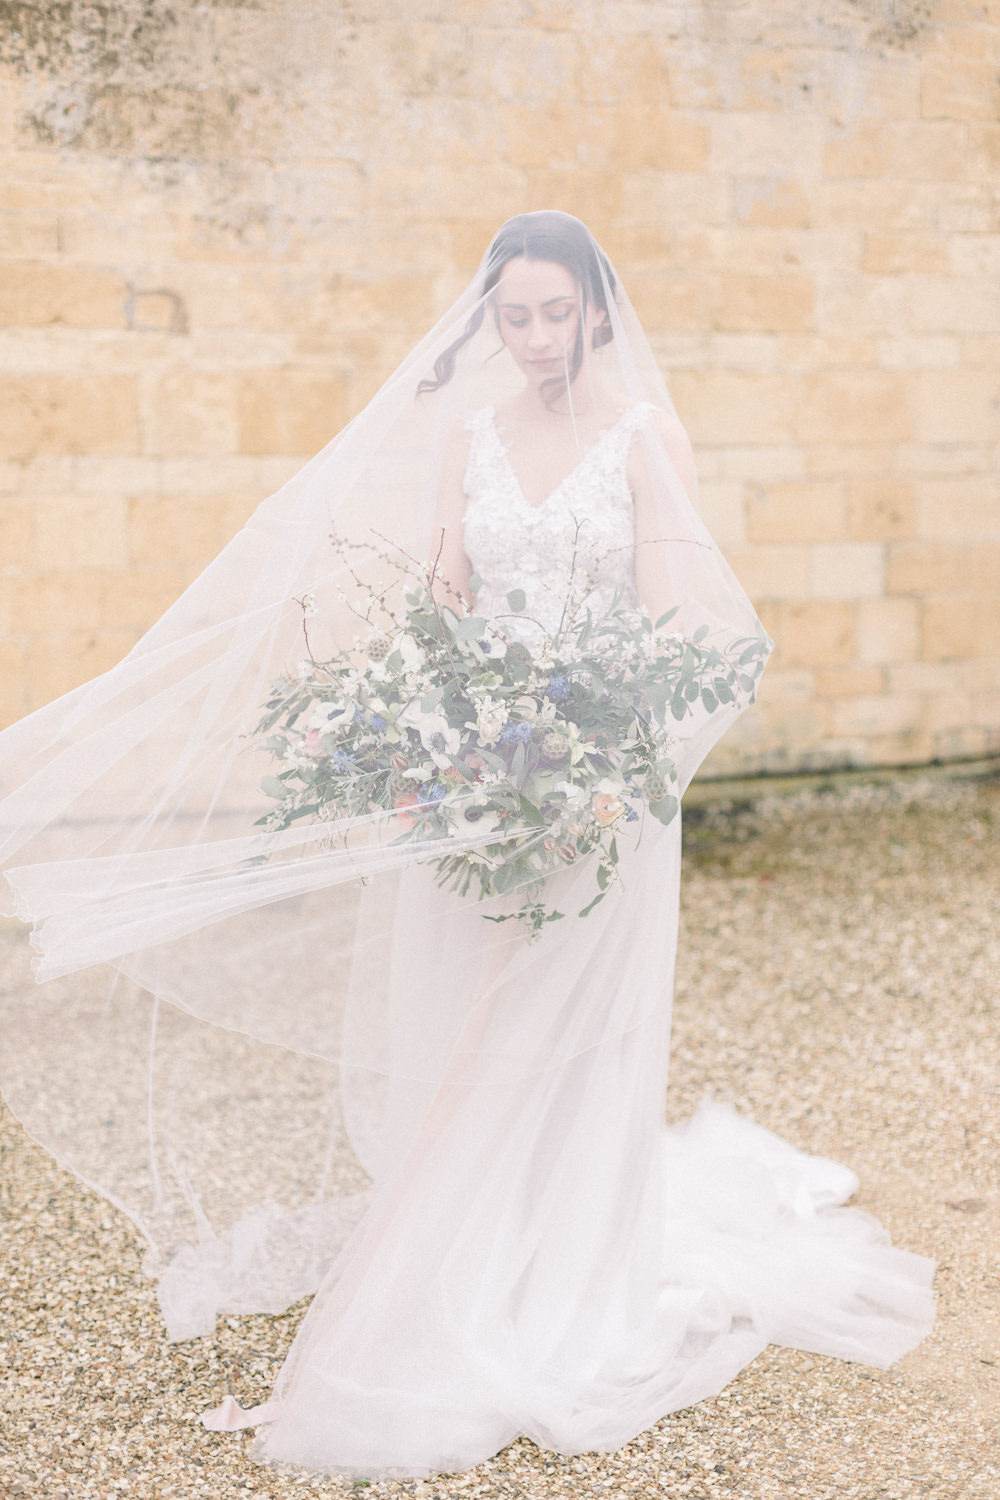 Dress Gown Bride Bridal Veil Winter Blue Barn Wedding Ideas Joanna Briggs Photography